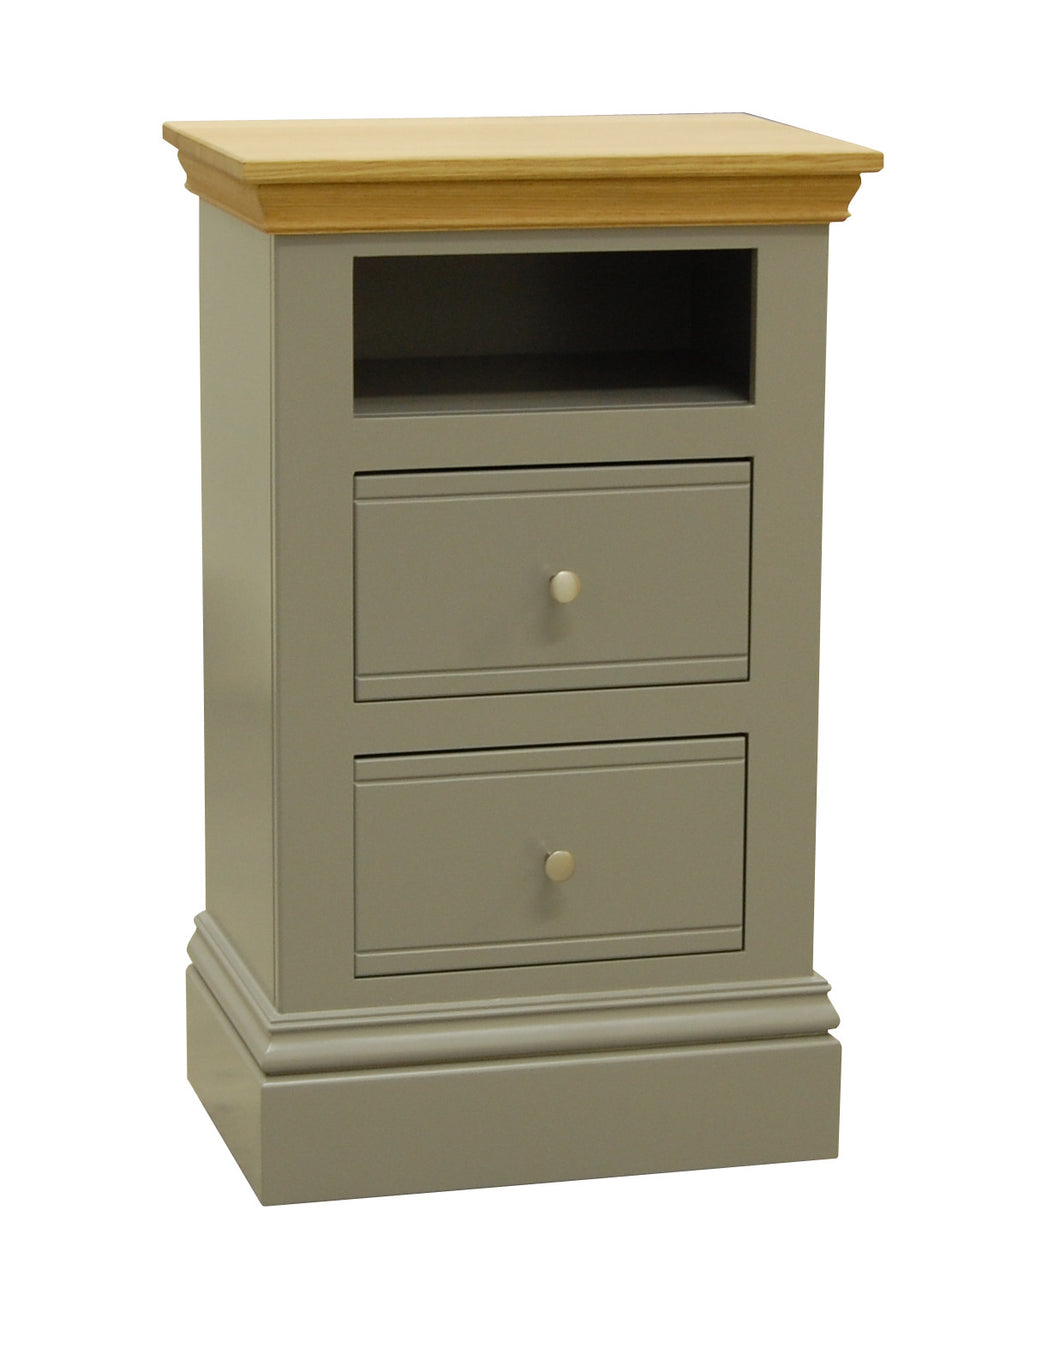 TCBC New England 2 Drawer Open Shelf Bedside